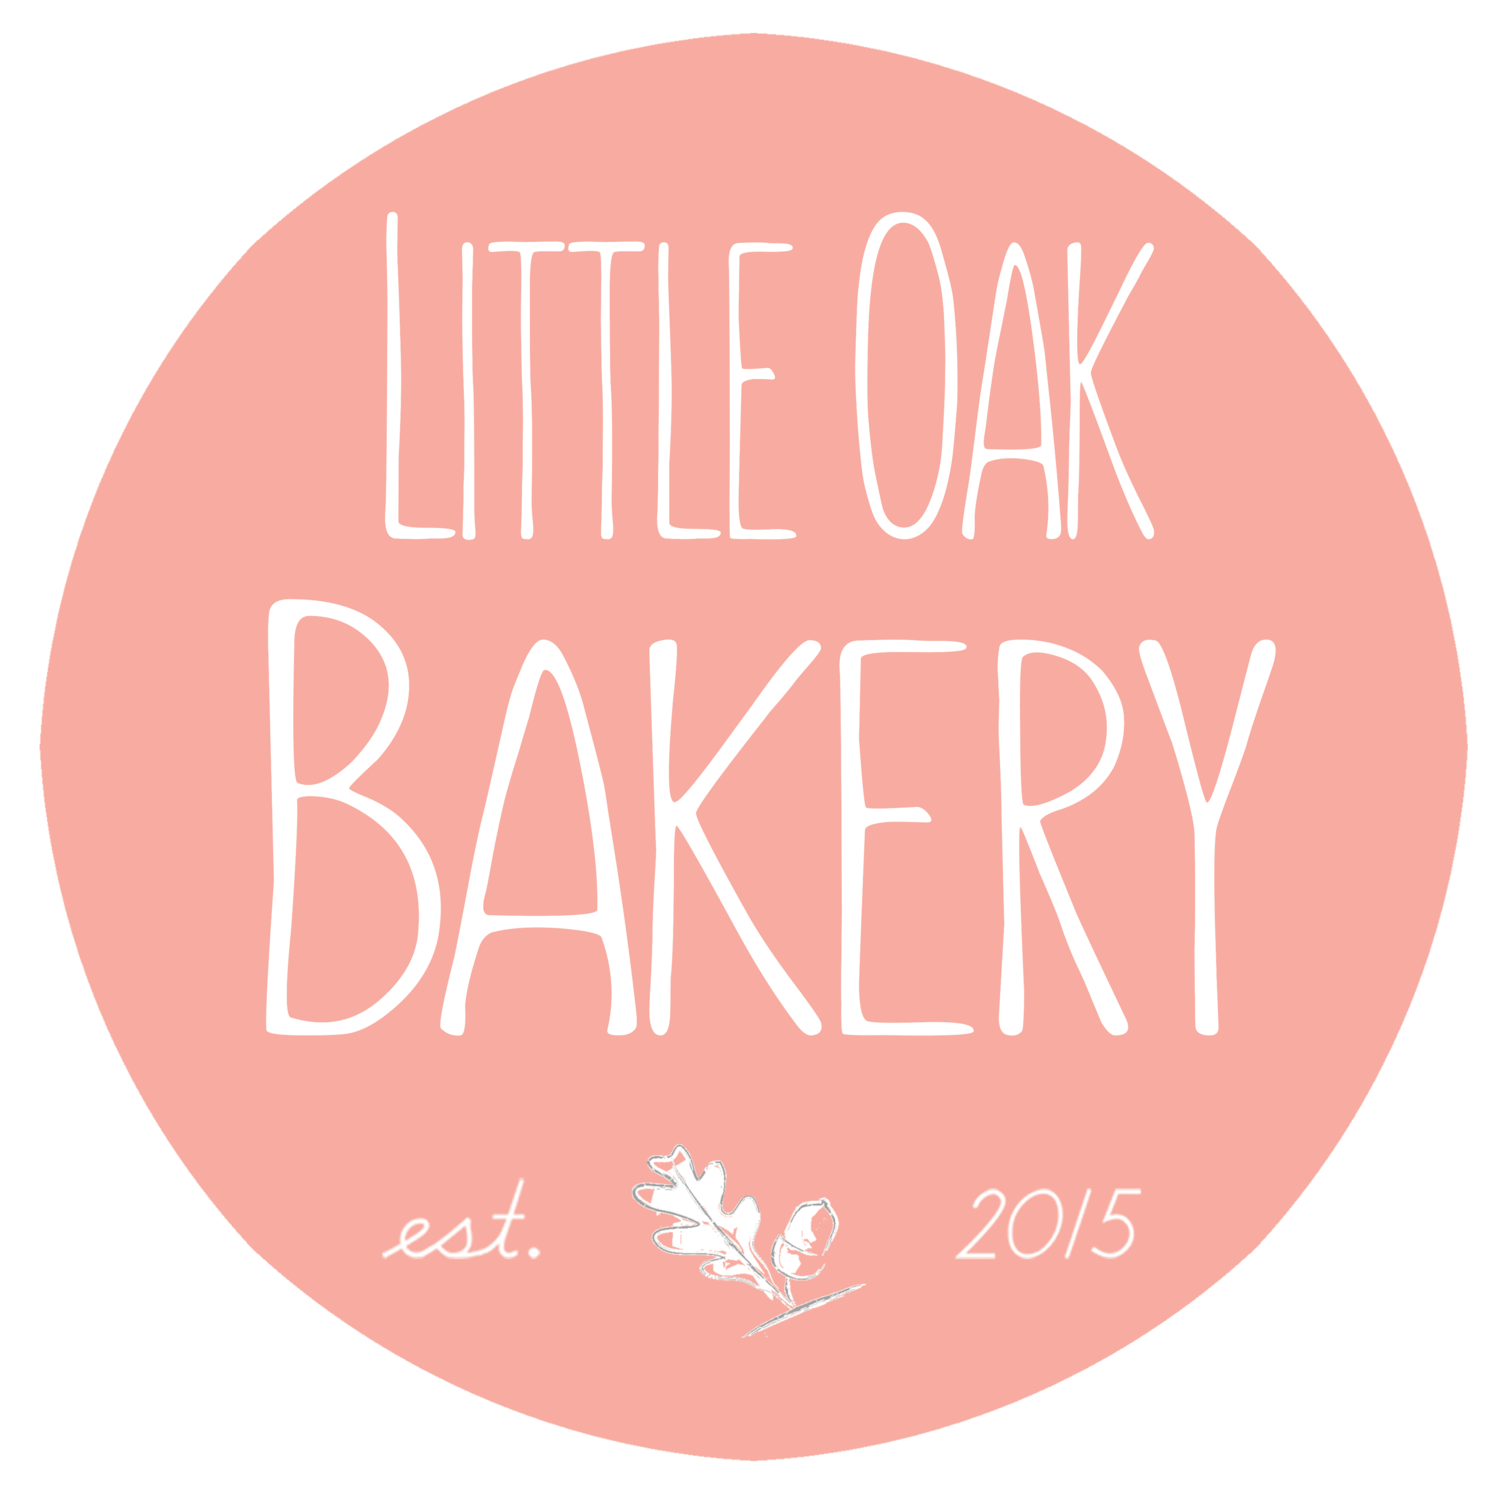 Little Oak Bakery